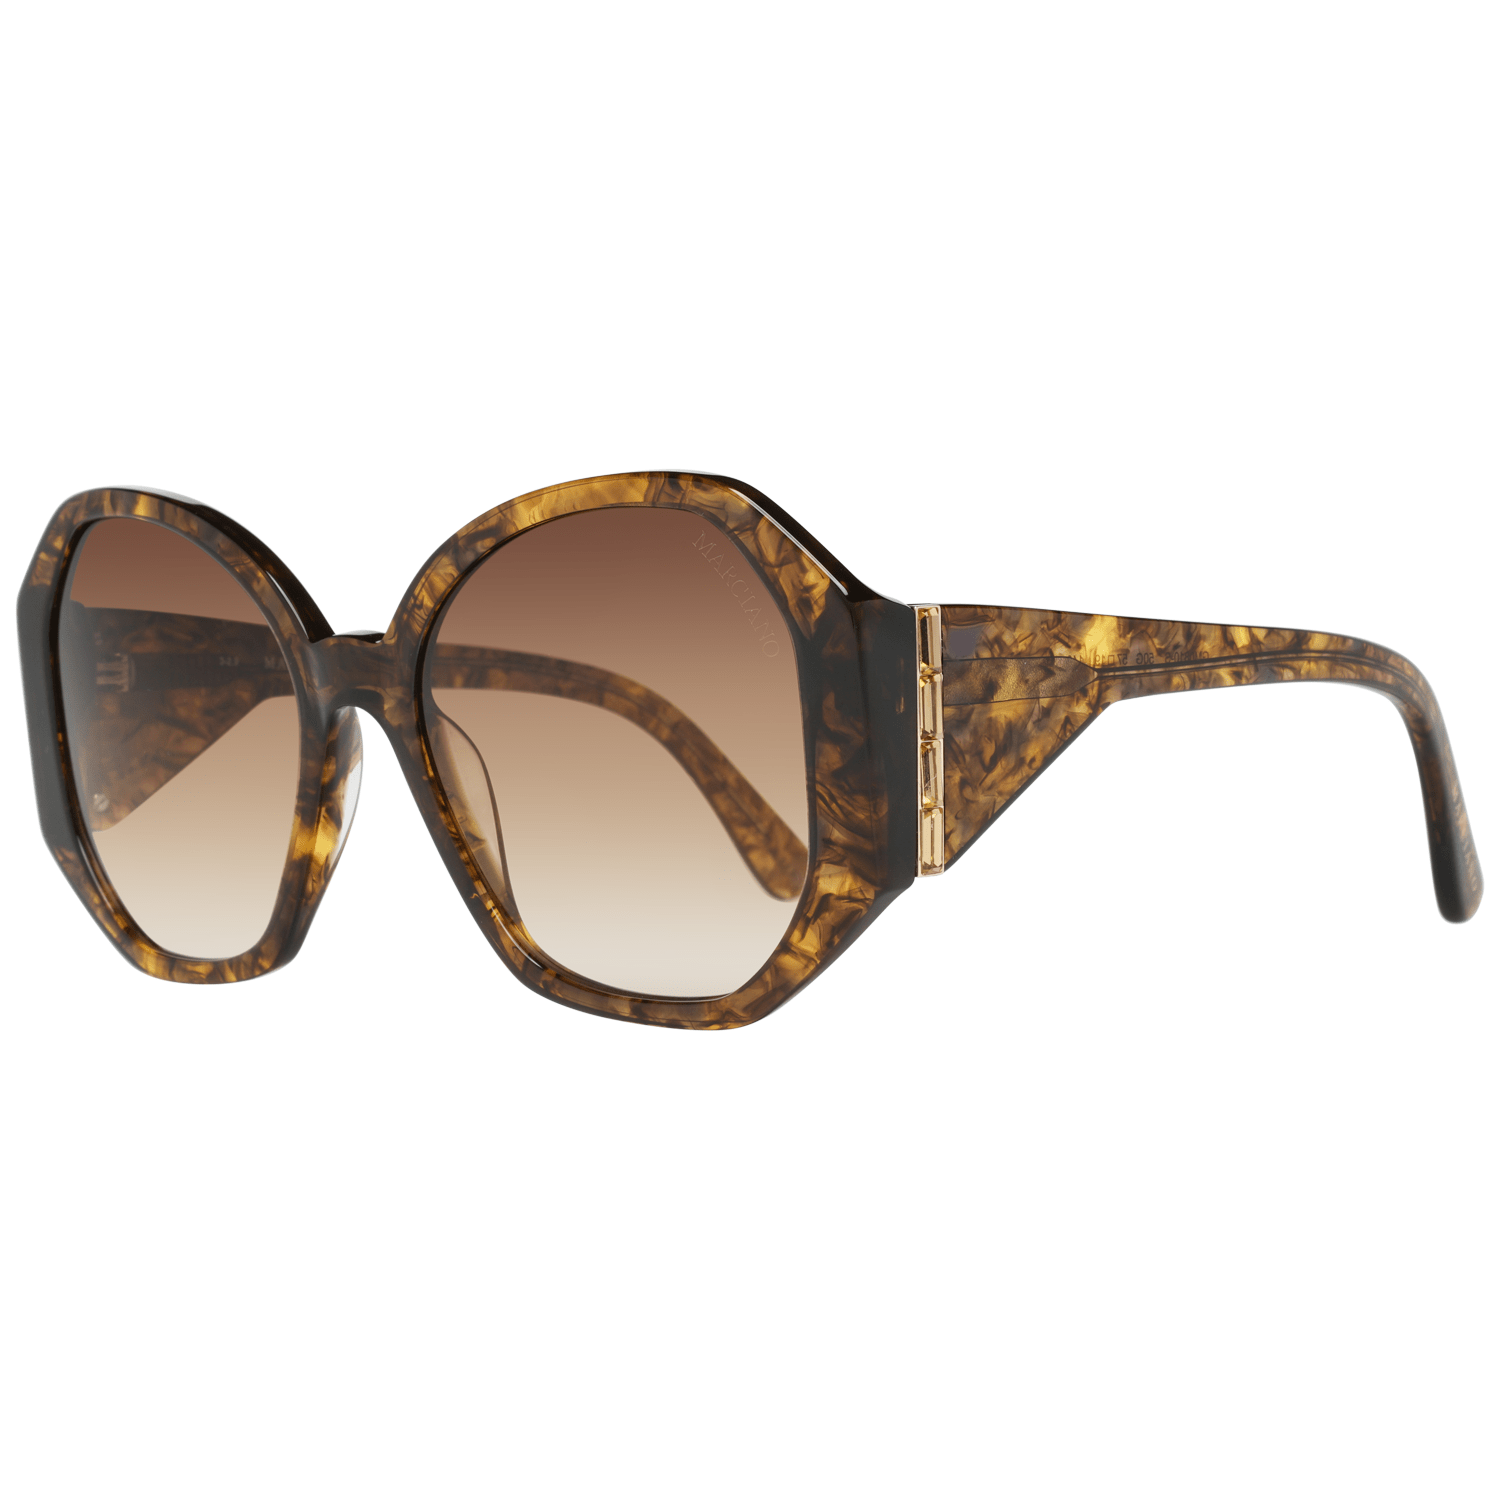 Guess By Marciano Women's Sunglasses Brown GM0809-S 6050G